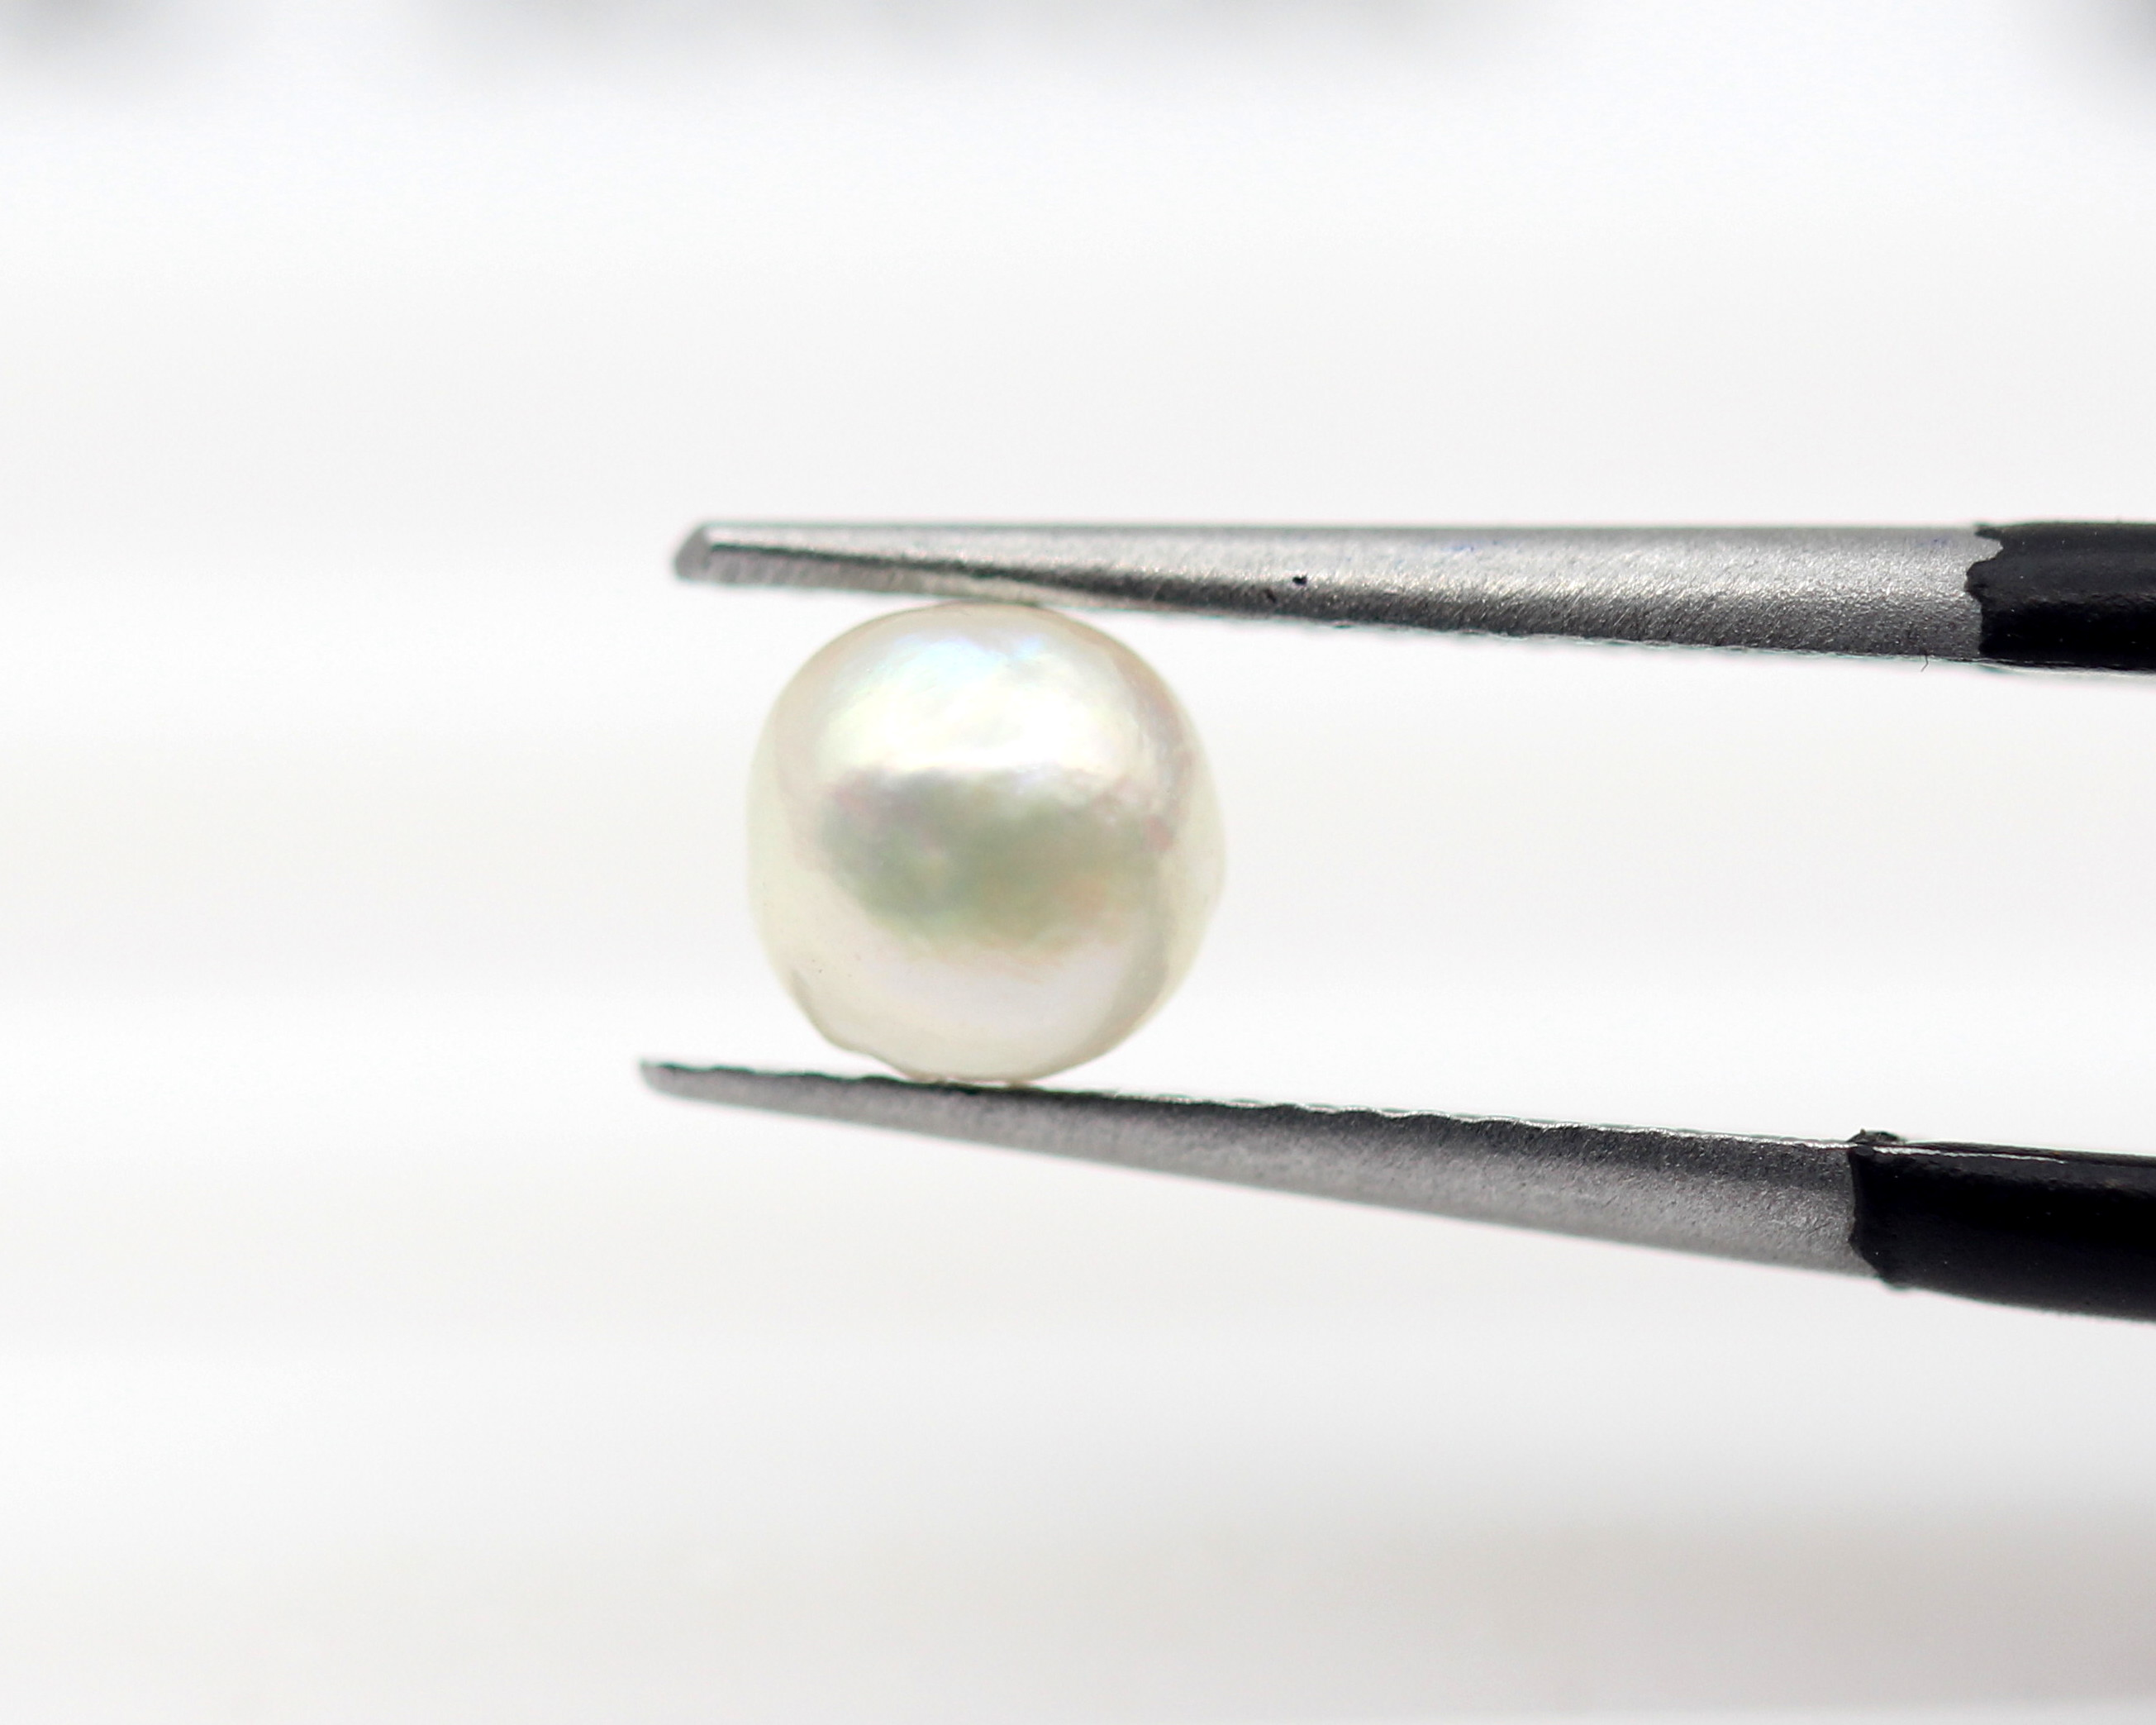 0.78 Ct Real Pearl Loose Natural Gemstone Round Cabochon Certified